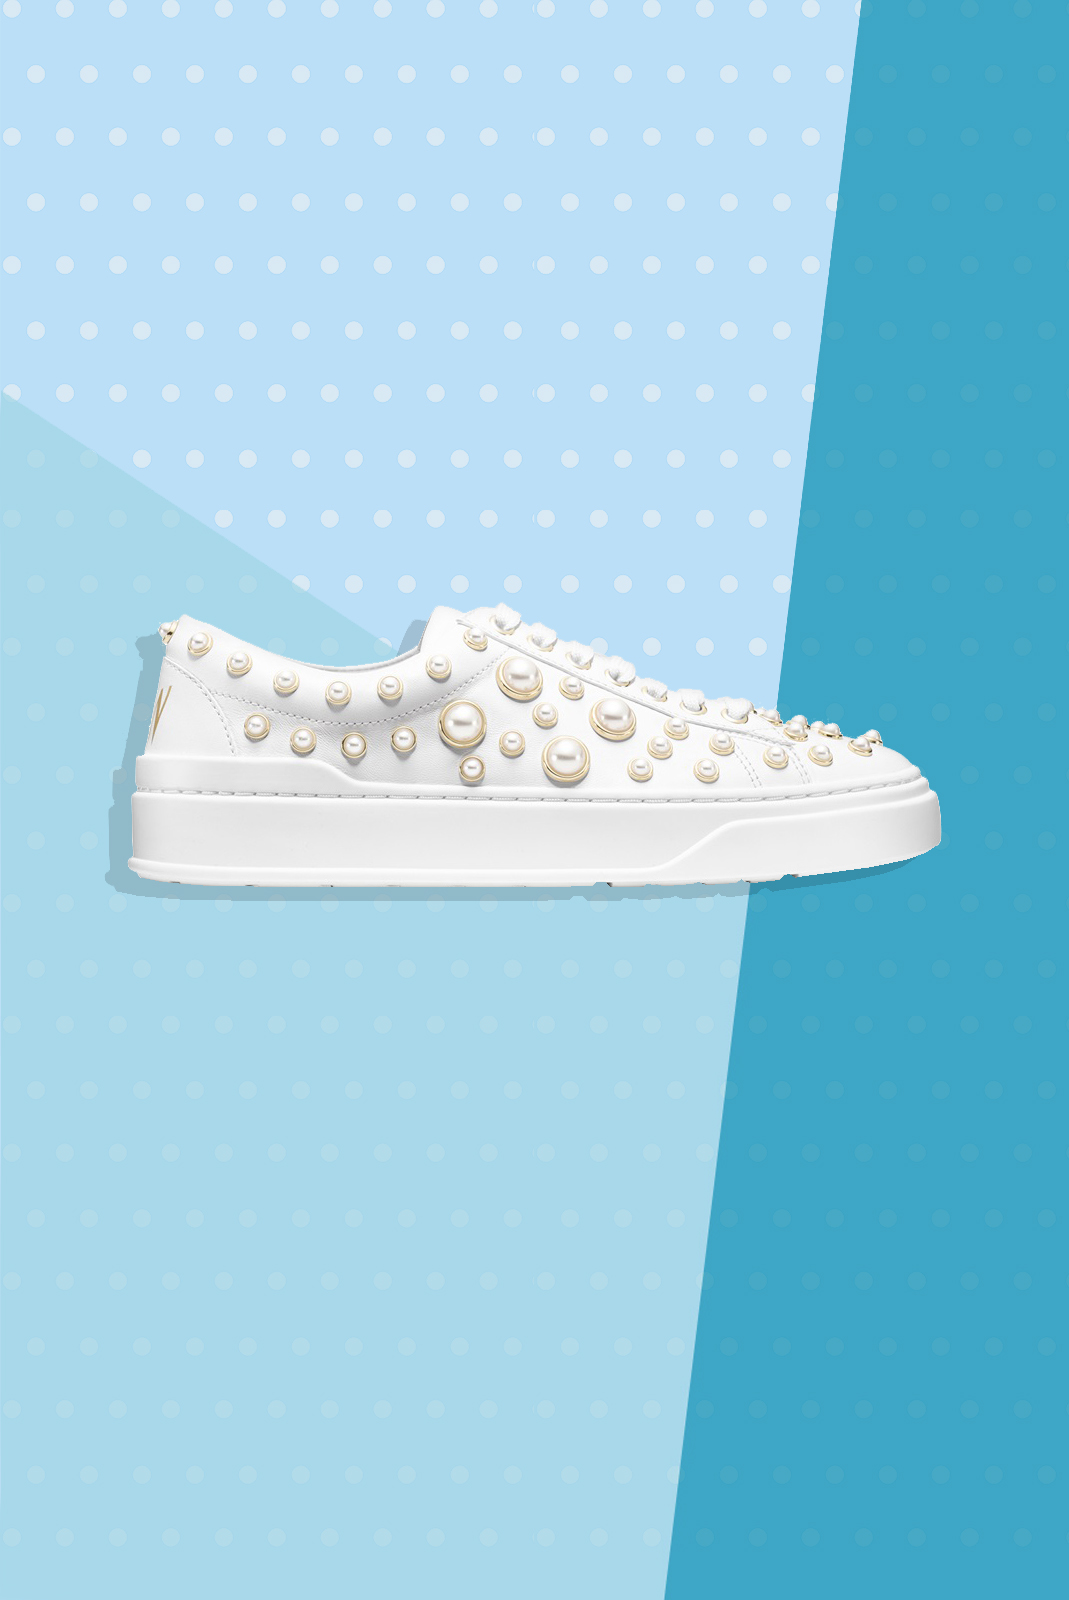 Wedding Sneakers for Every Kind of Bride